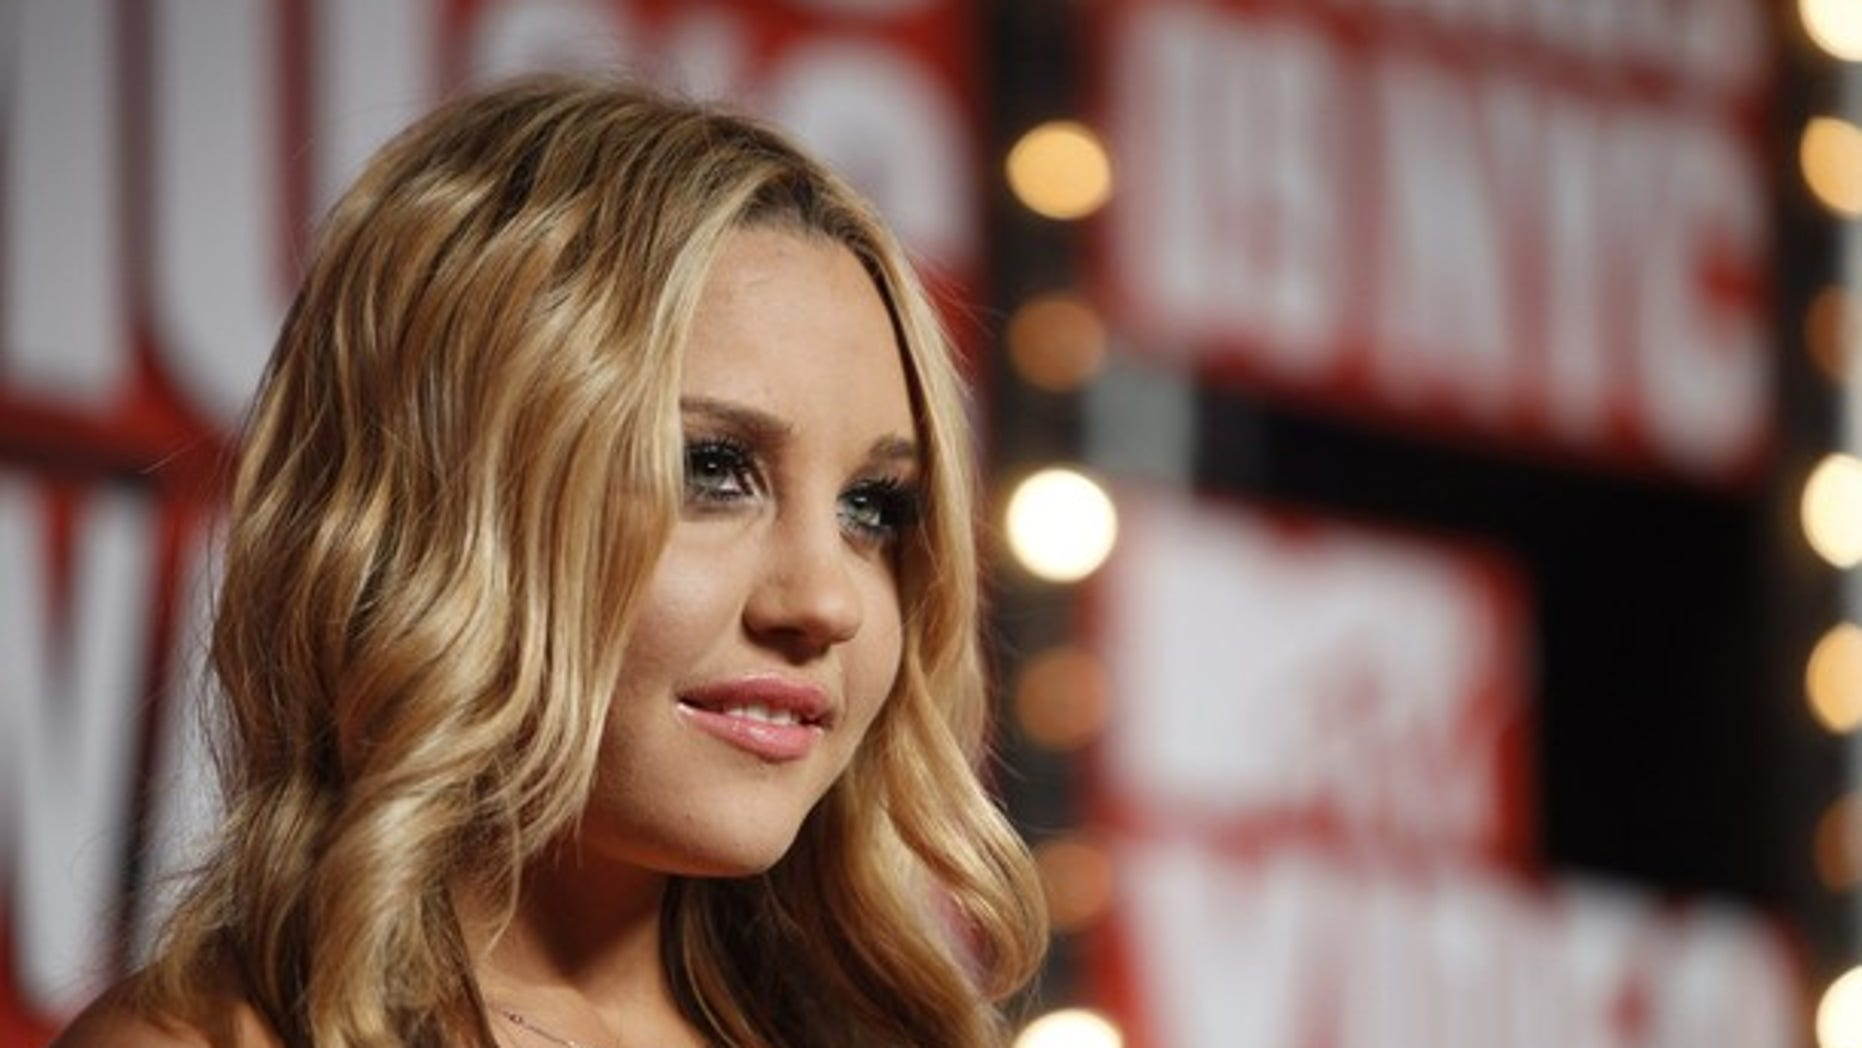 Actress Amanda Bynes arrives at the 2009 MTV Video Music Awards in New York, September 13, 2009.     REUTERS/Lucas Jackson (UNITED STATES ENTERTAINMENT)